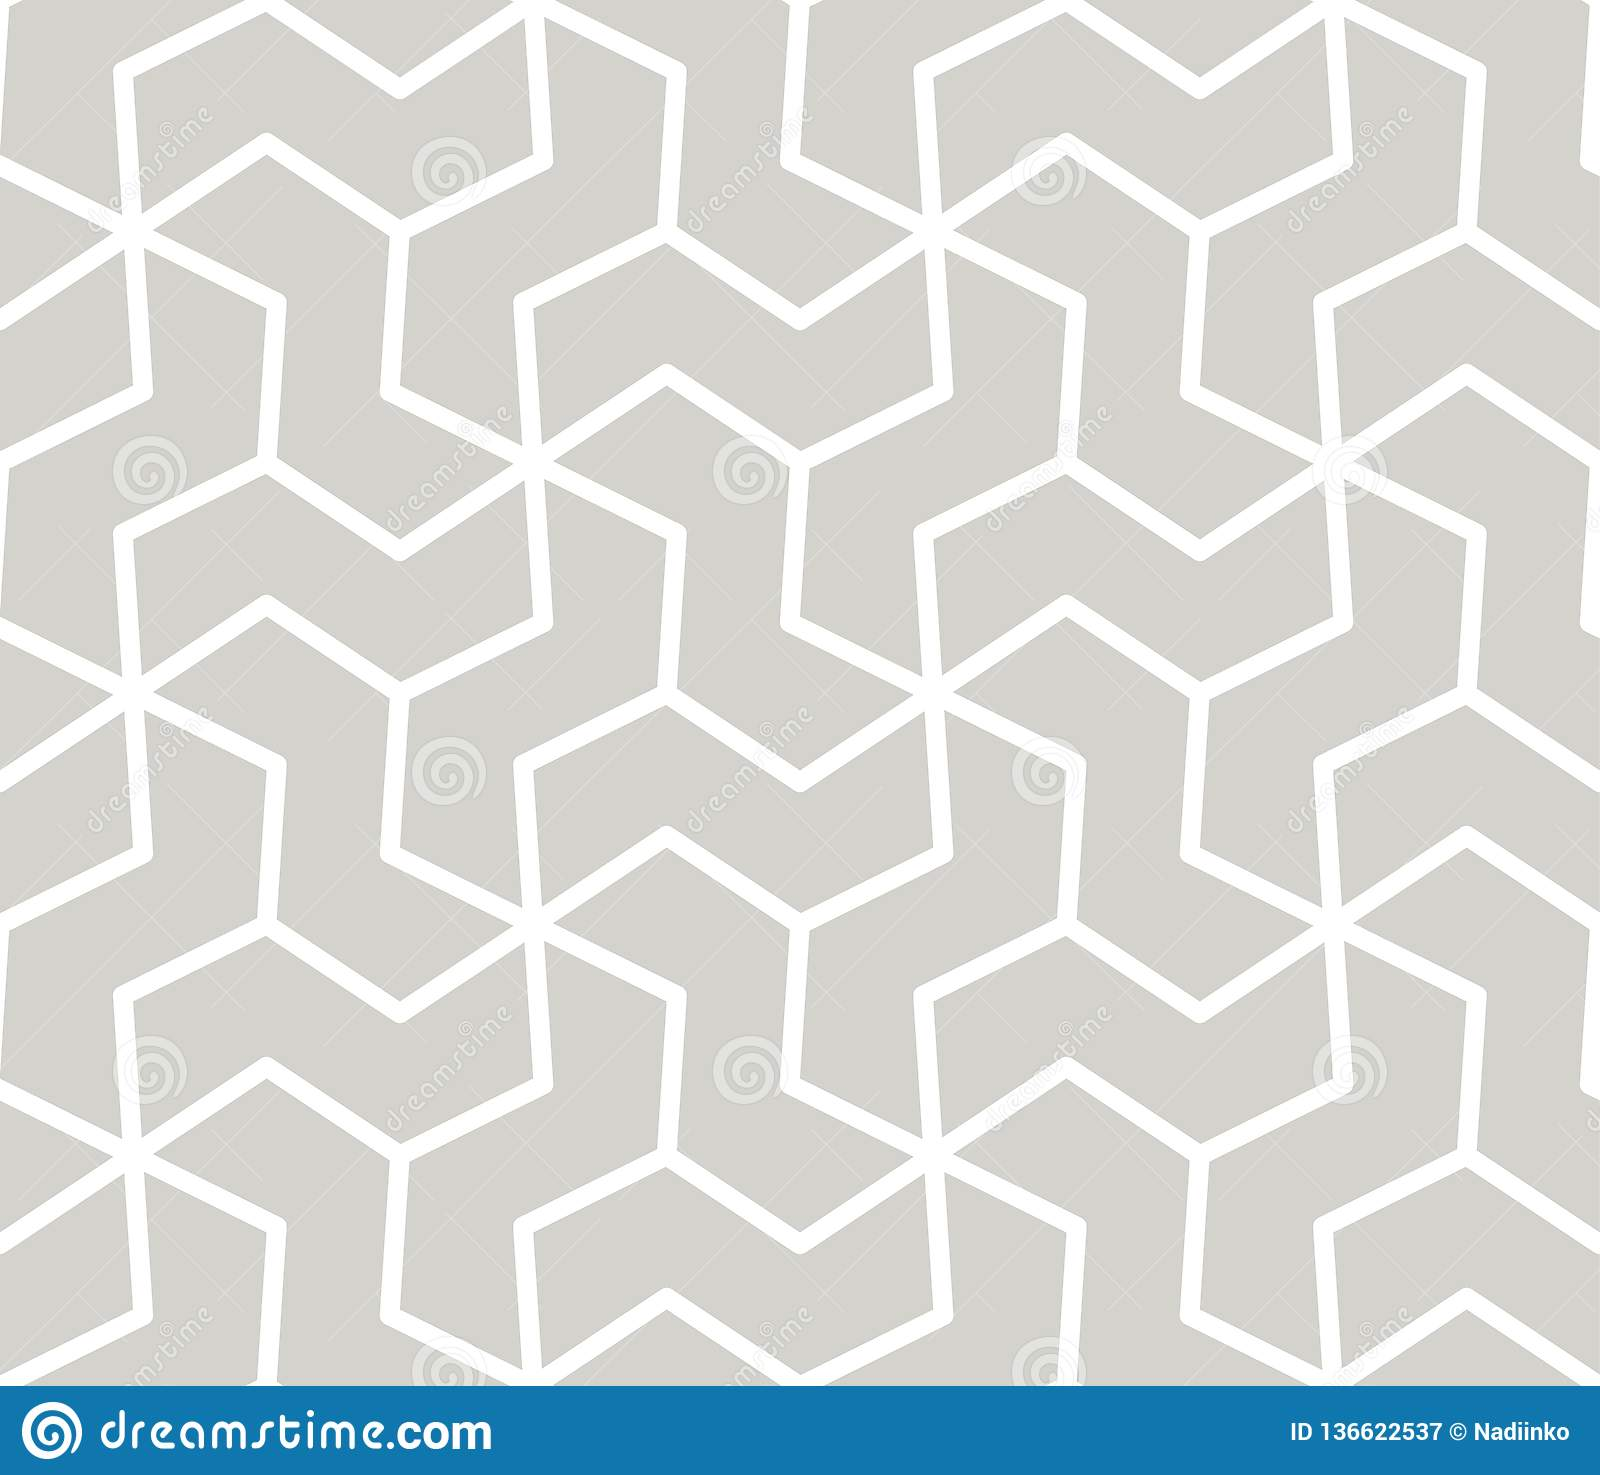 Abstract simple geometric vector seamless pattern with white line texture on grey background. Light gray modern